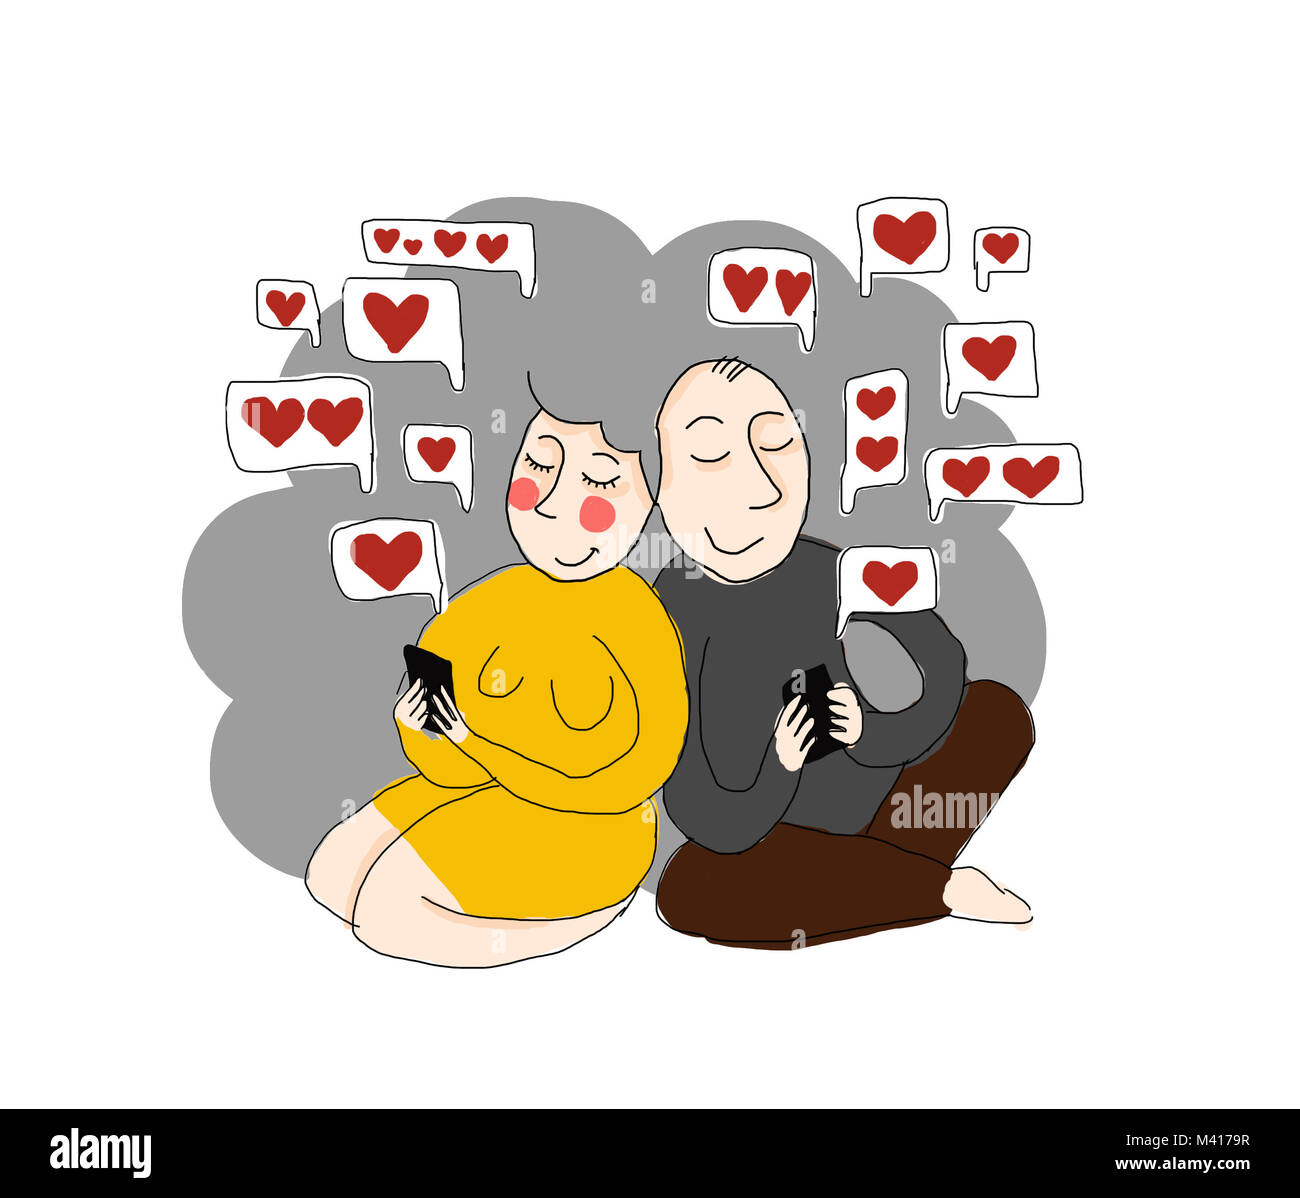 love sms - illustration, two old people / grandparents / using phones. love in old age. - Stock Image